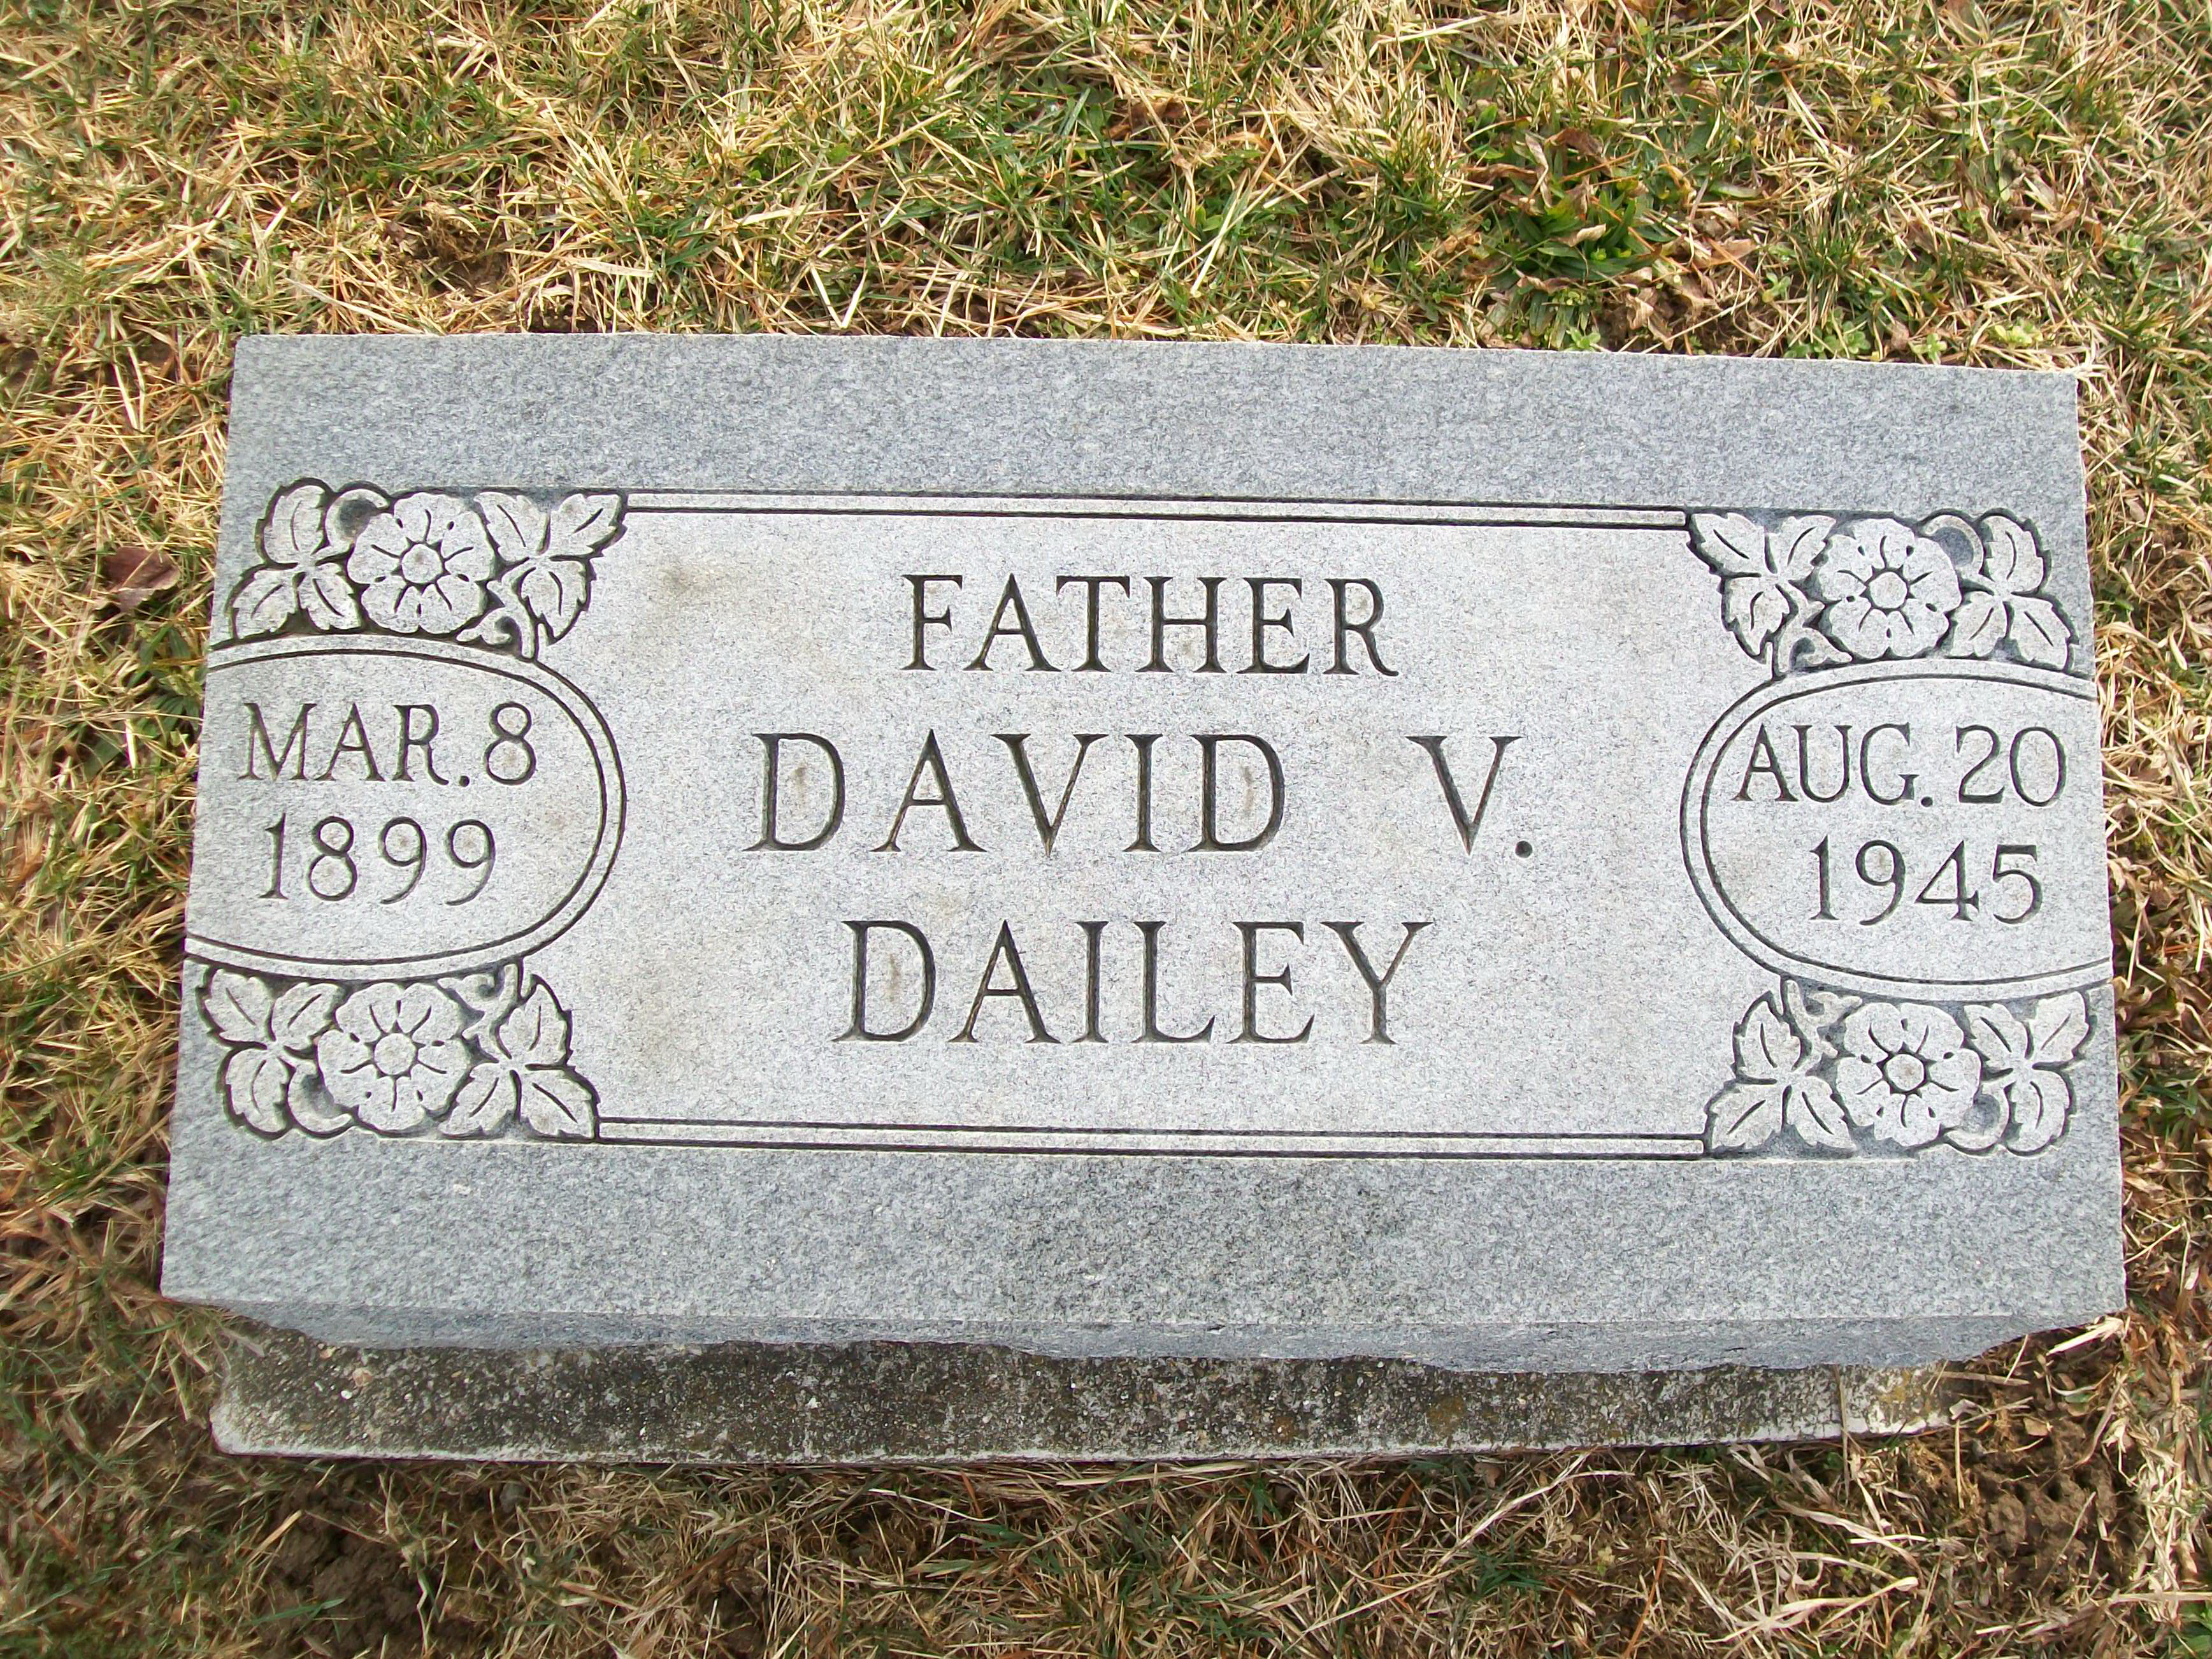 David Lee Dailey